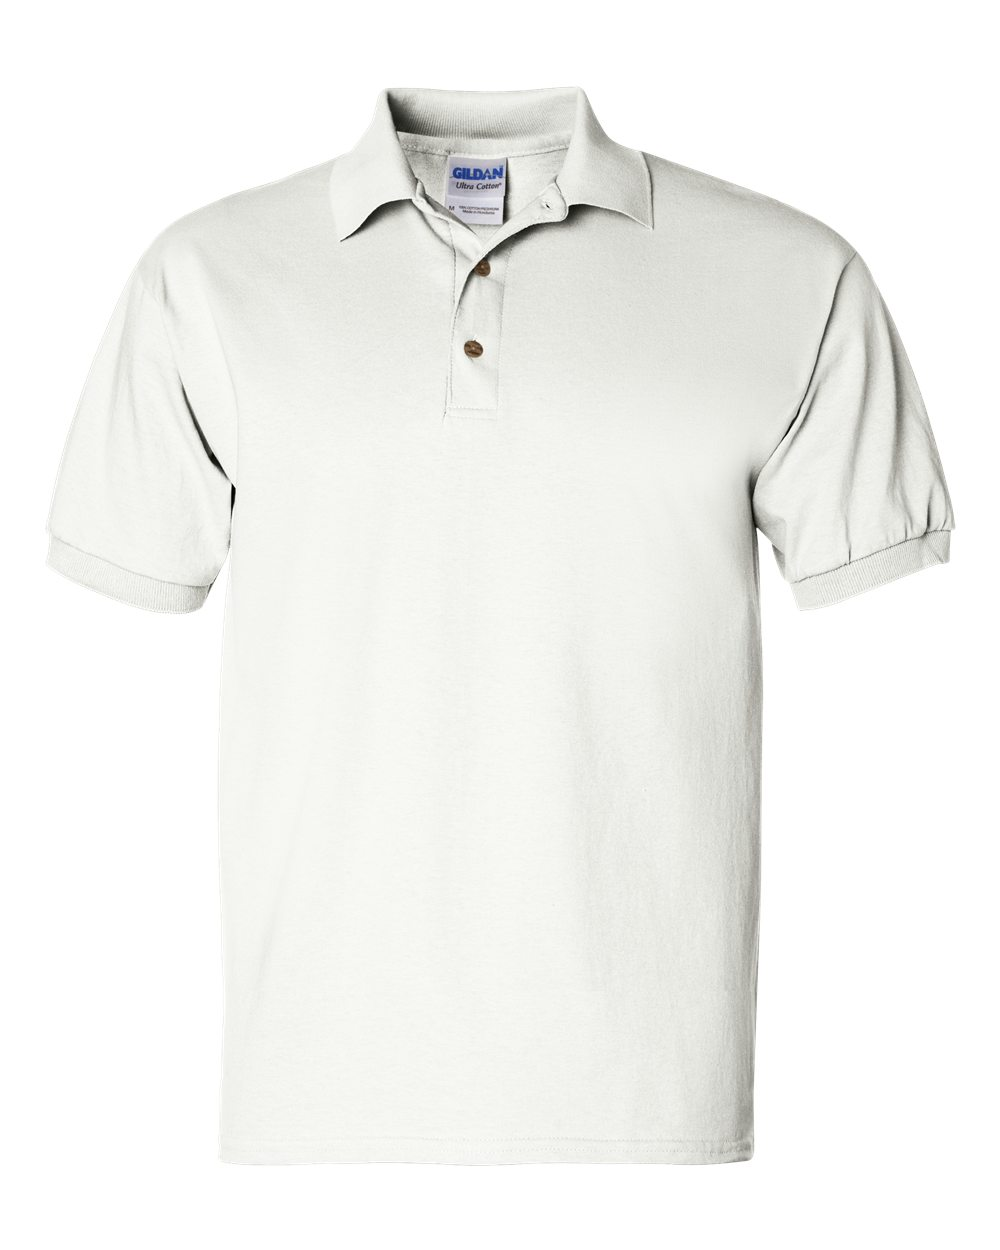 Gildan 2800 Ultra Cotton Jersey Sport Shirt Needen Usa